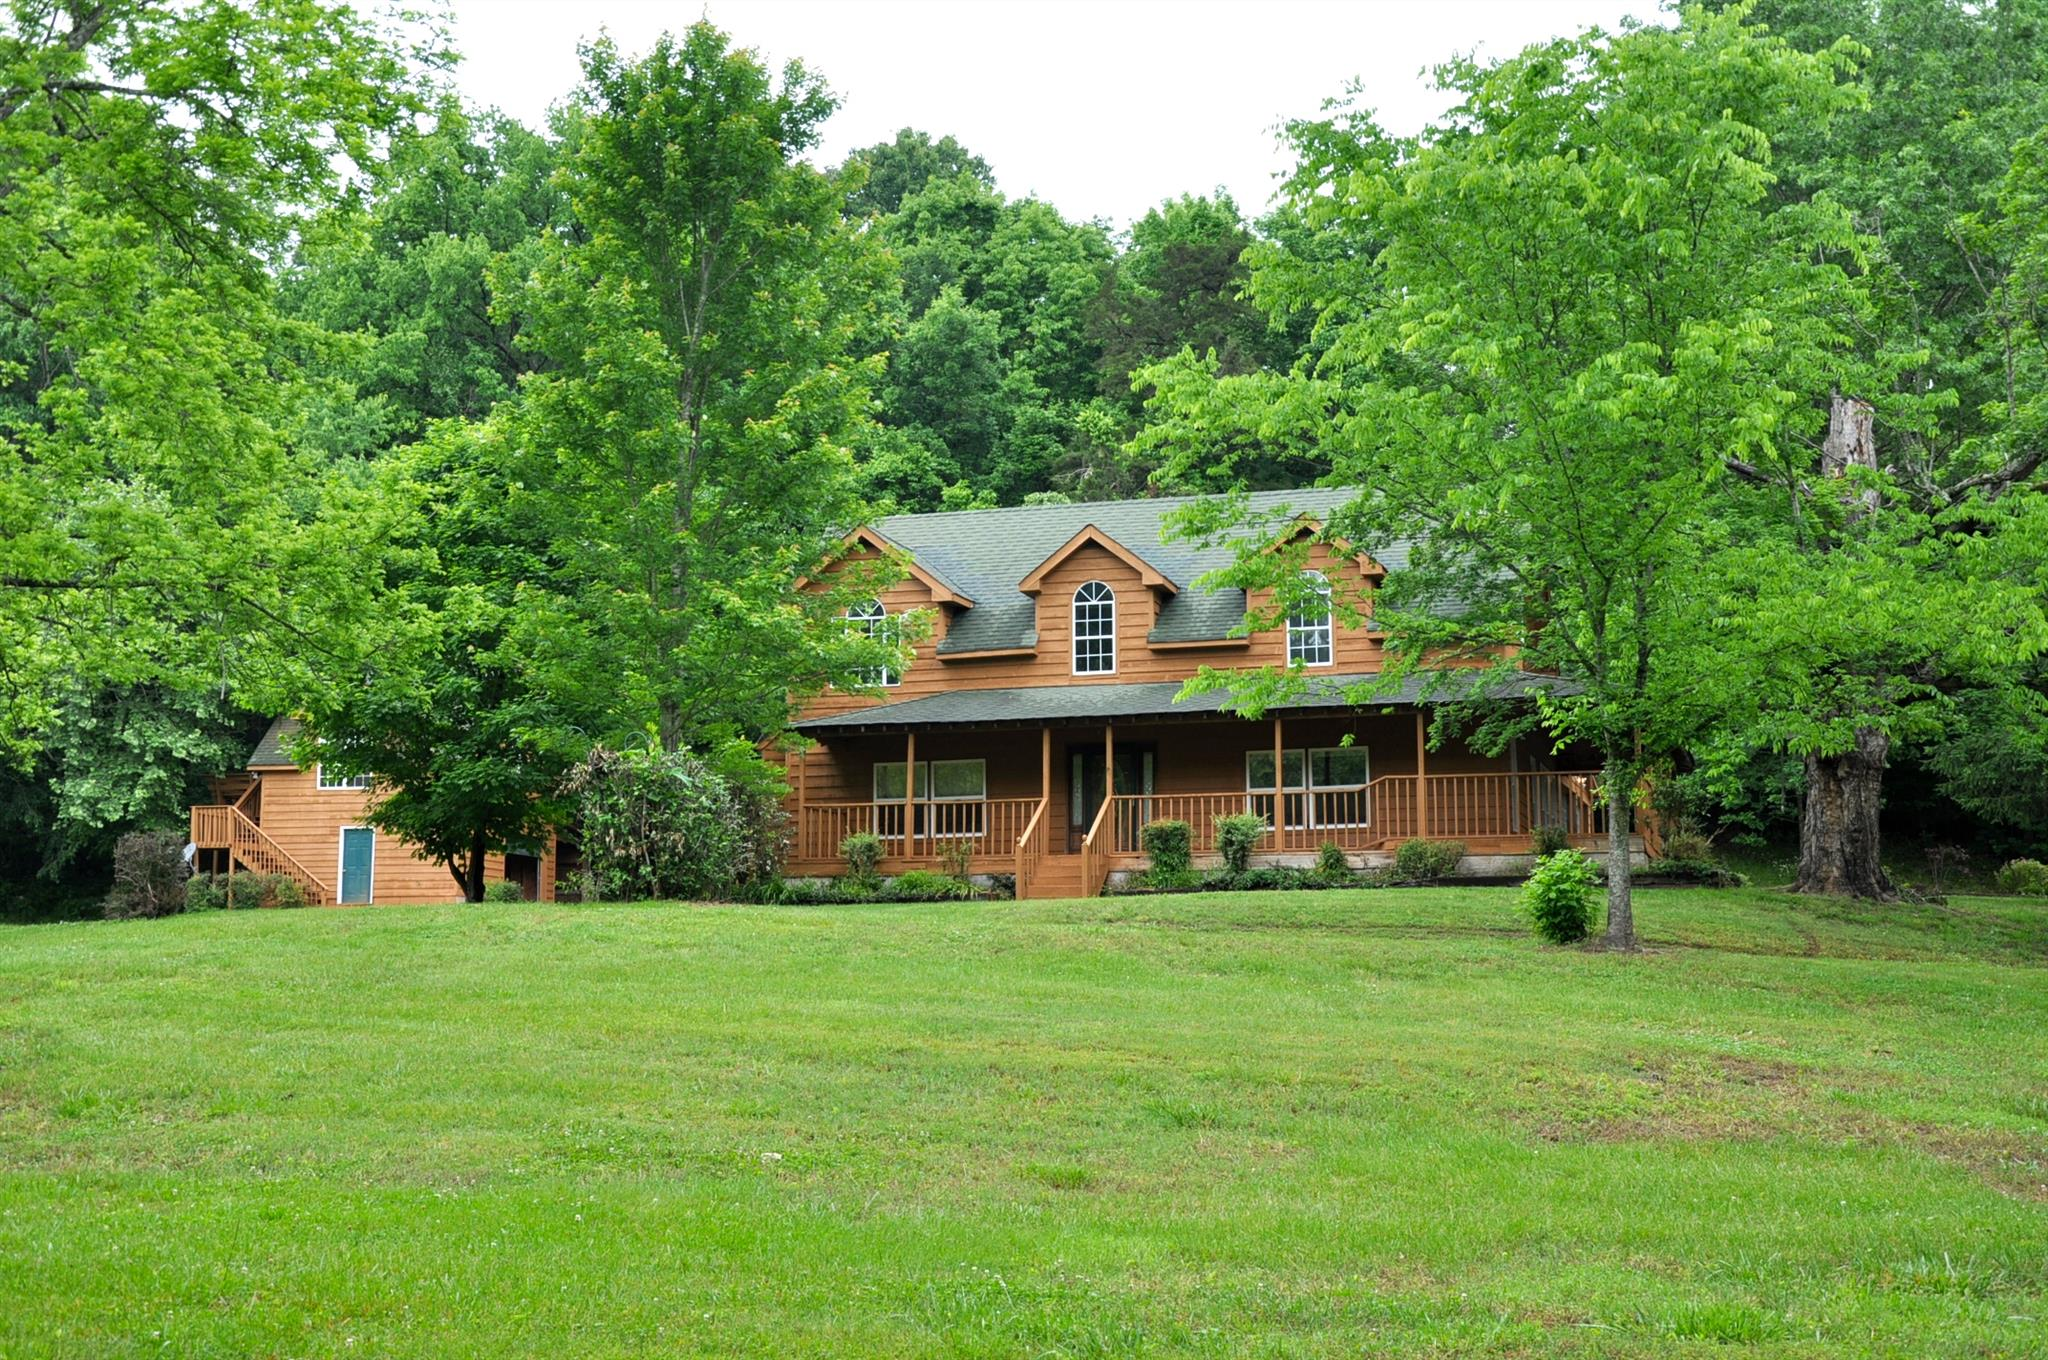 8013 Mill Rd, Cross Plains, TN 37049